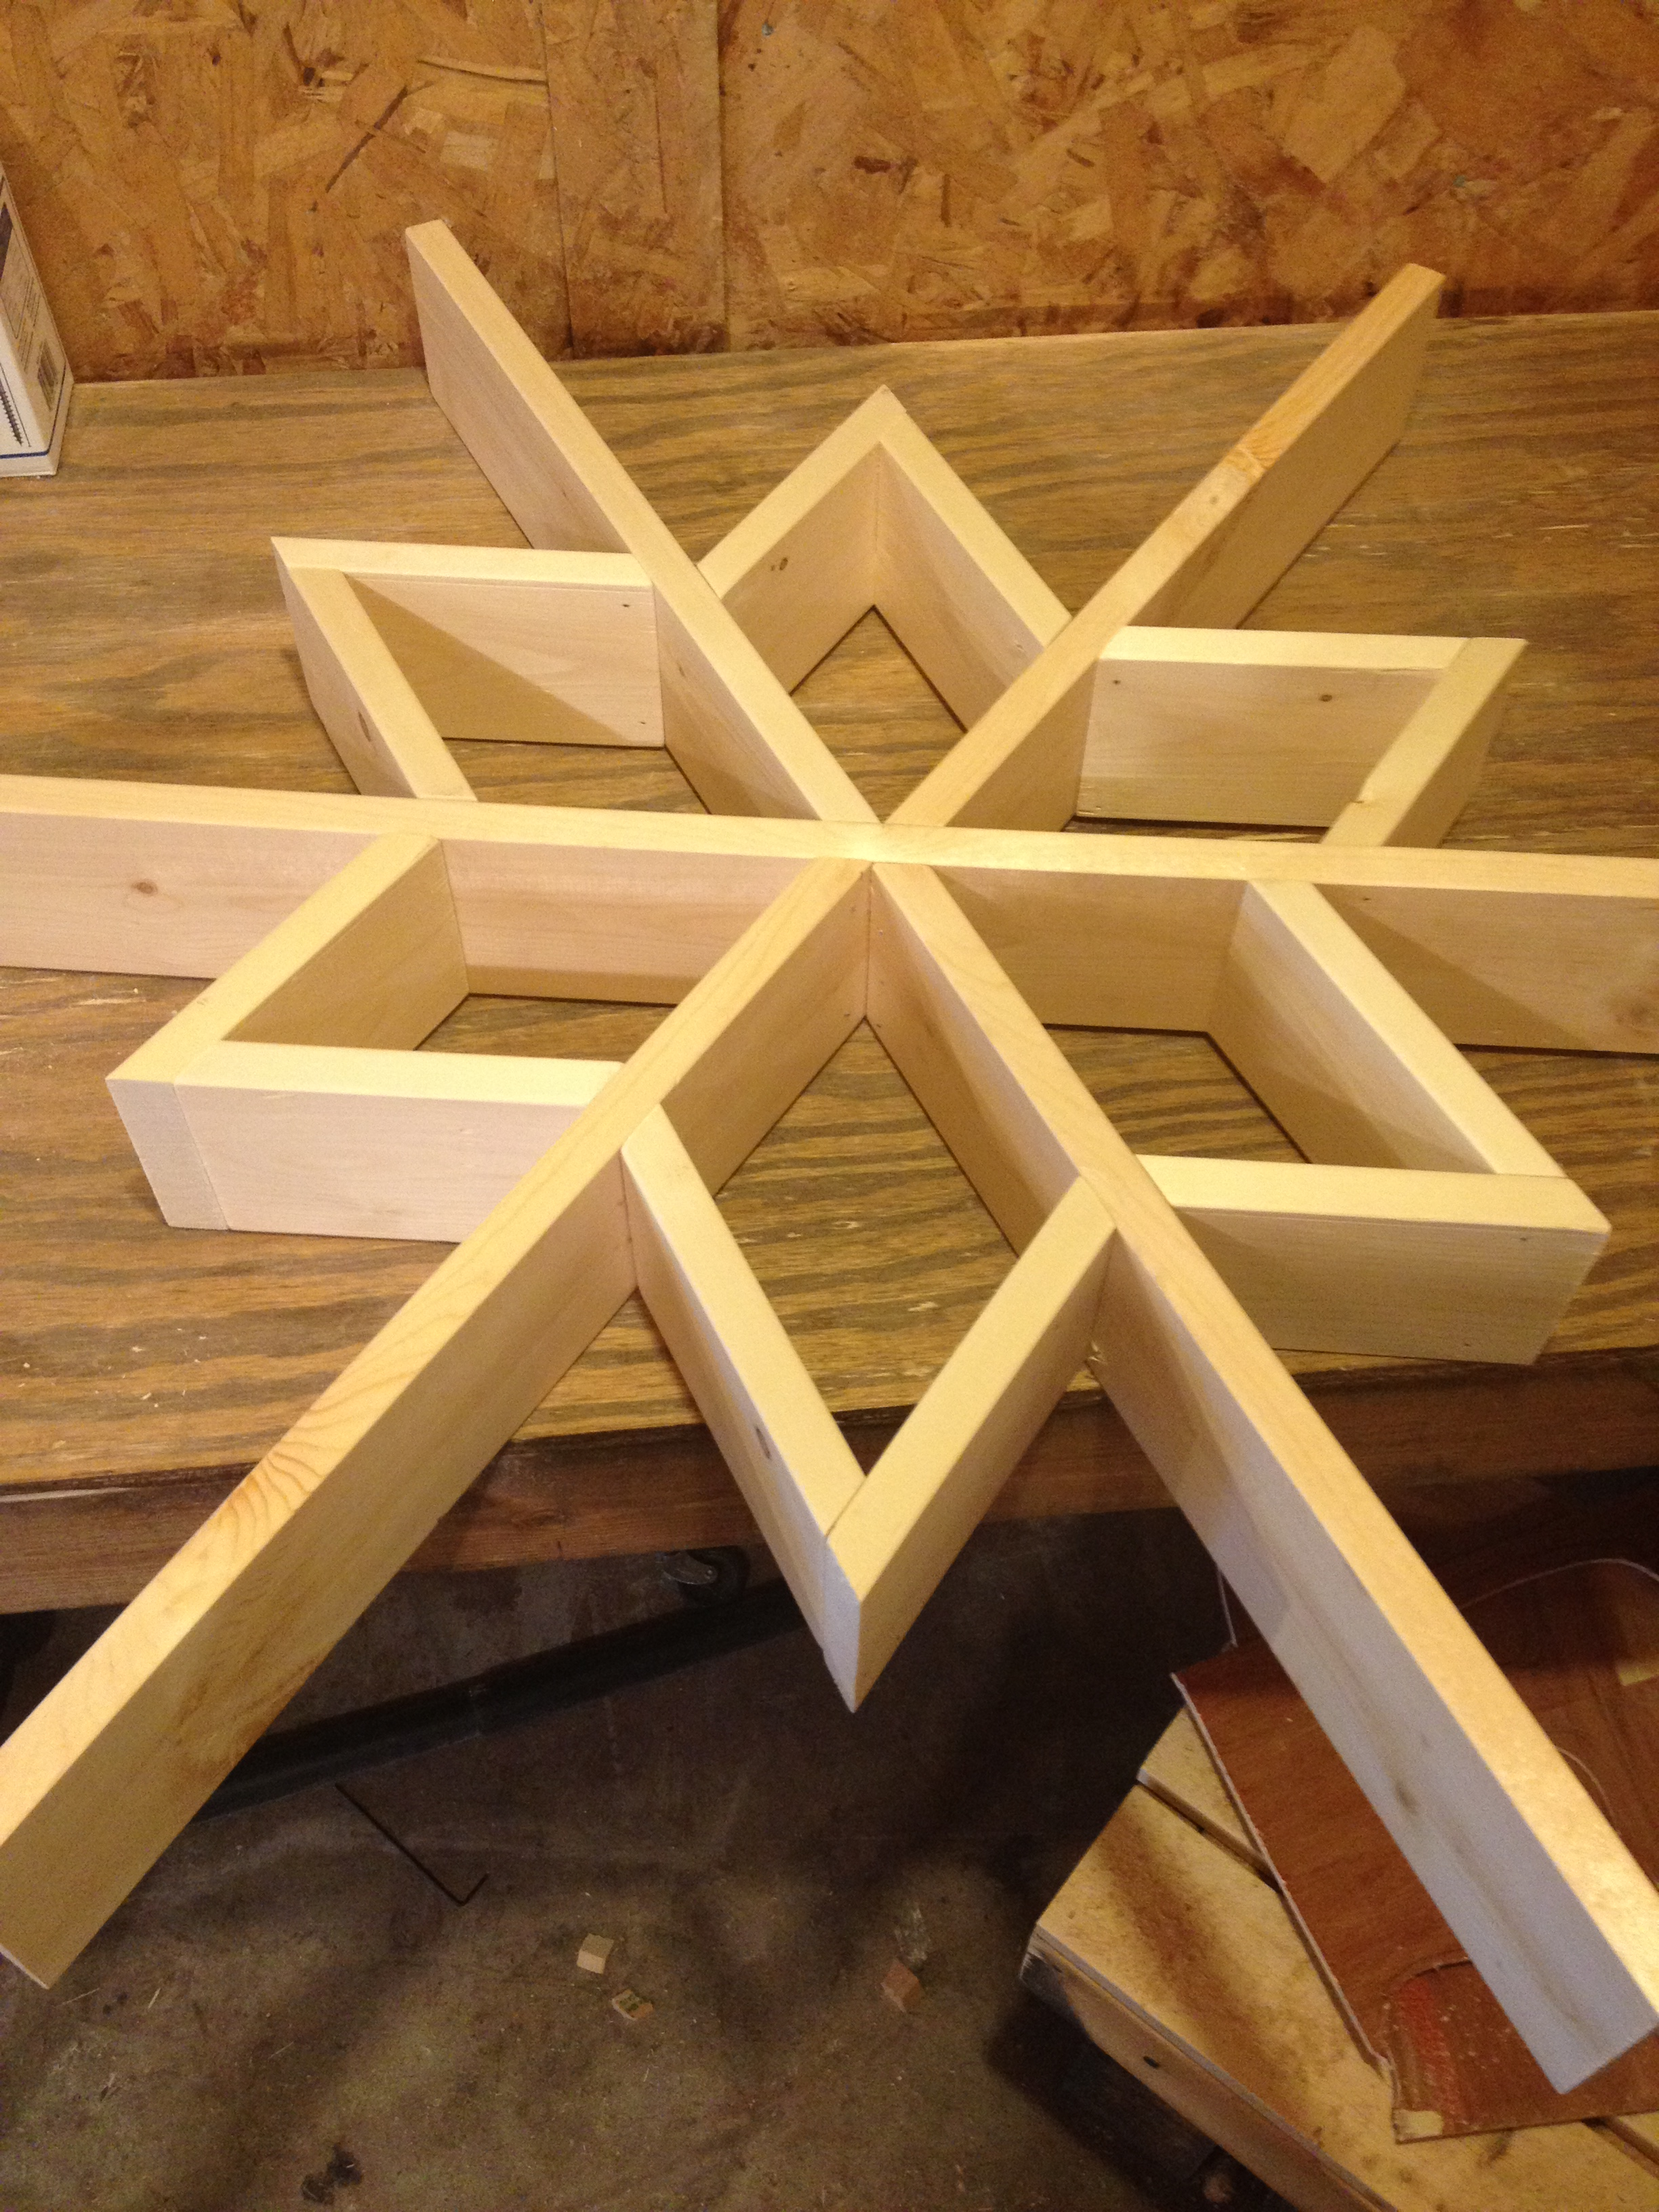 wall shelf assembly in progress--triangles attached to main frame